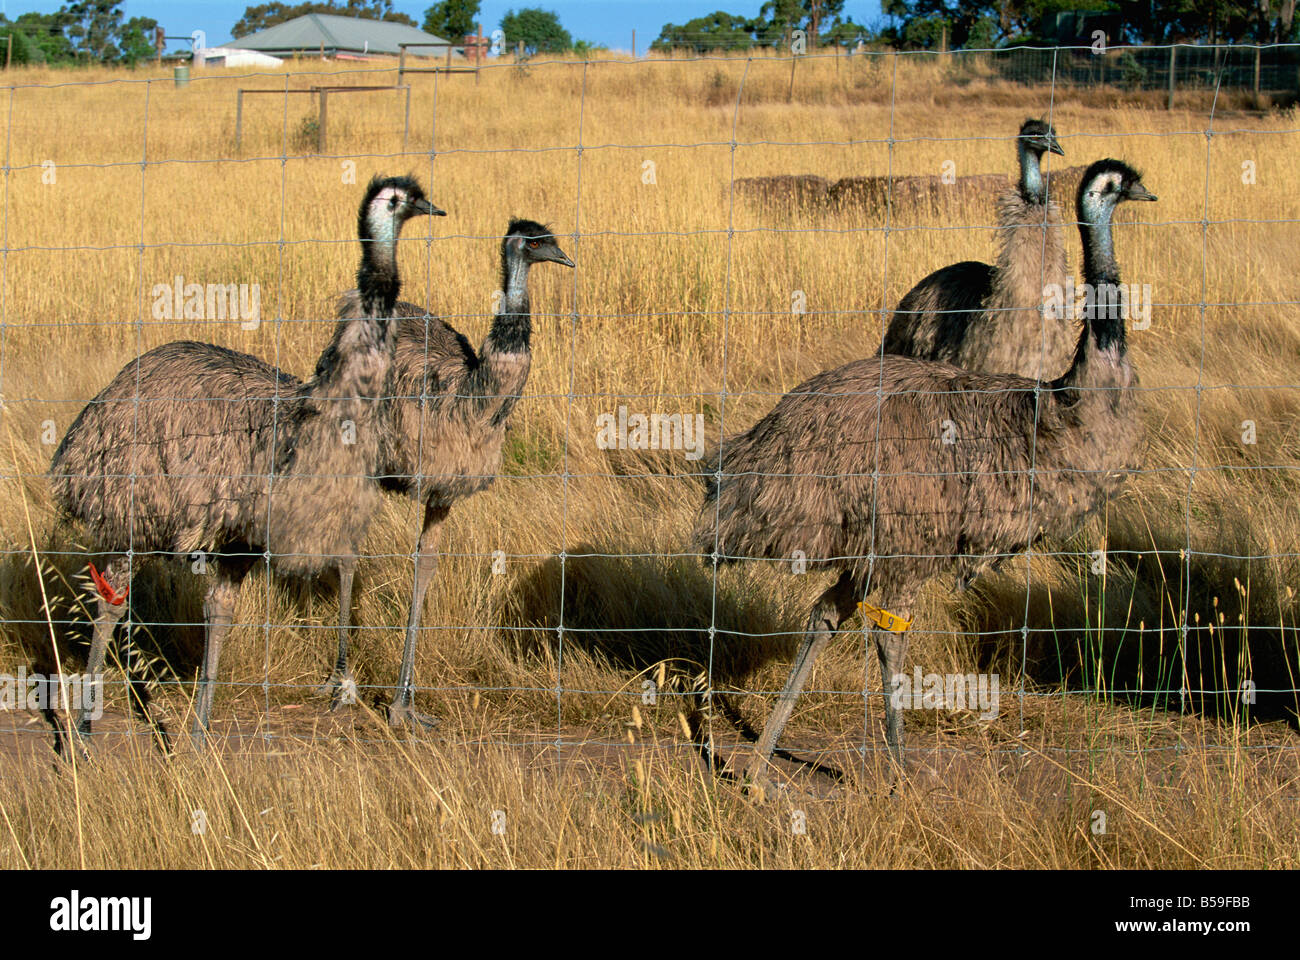 Emus at an emu farm near Rutherglen in the northeast of the state, Victoria, Australia, Pacific - Stock Image